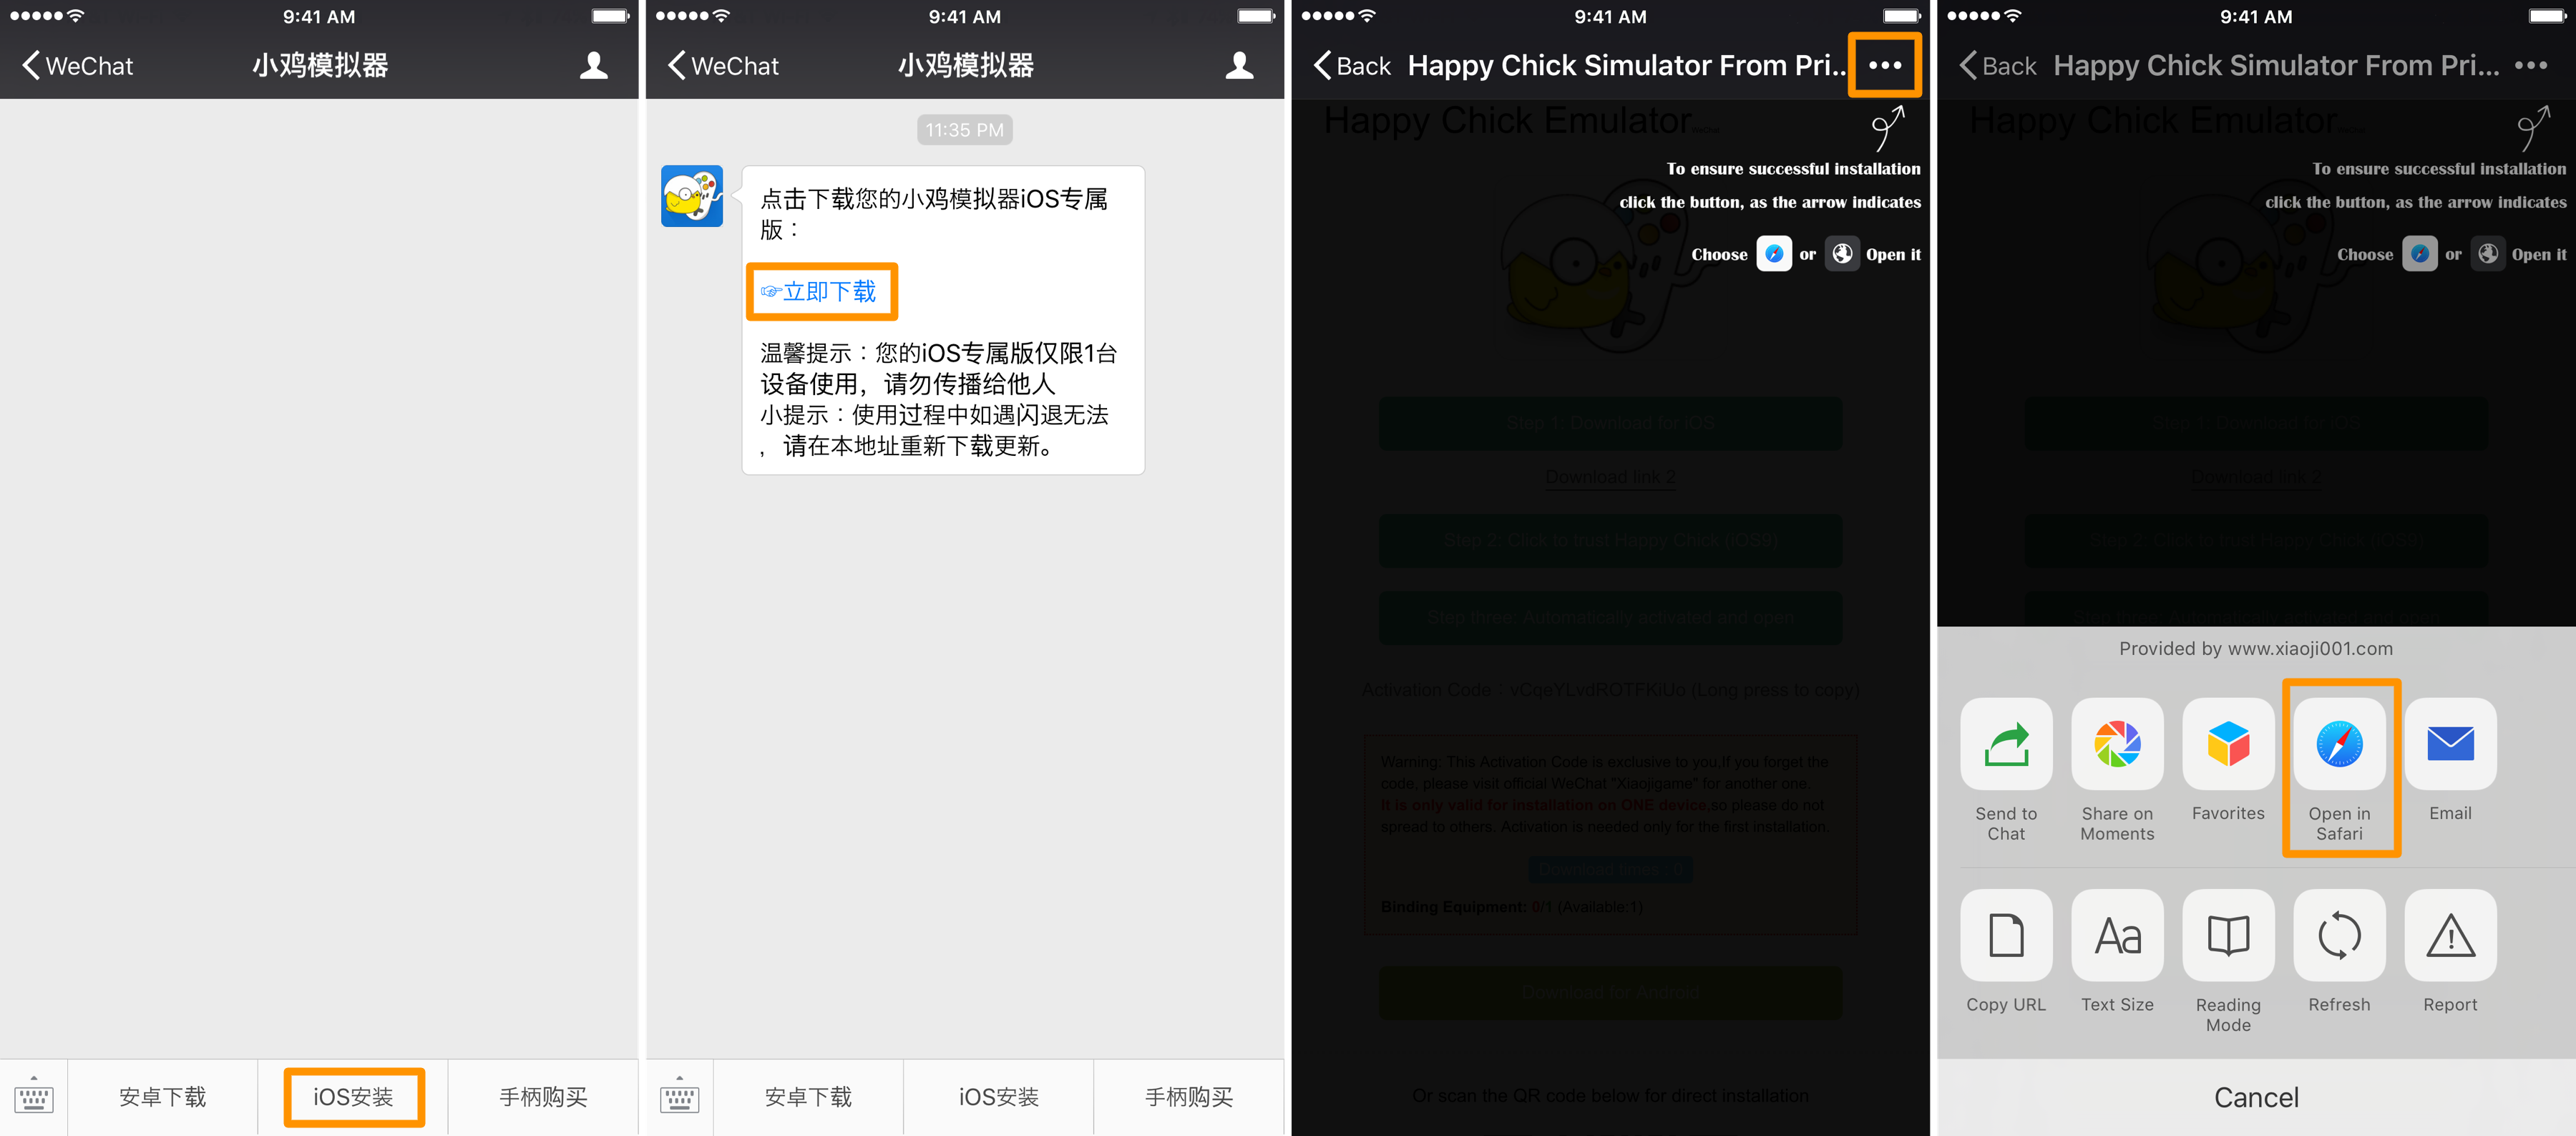 wechat open emulator link in safari